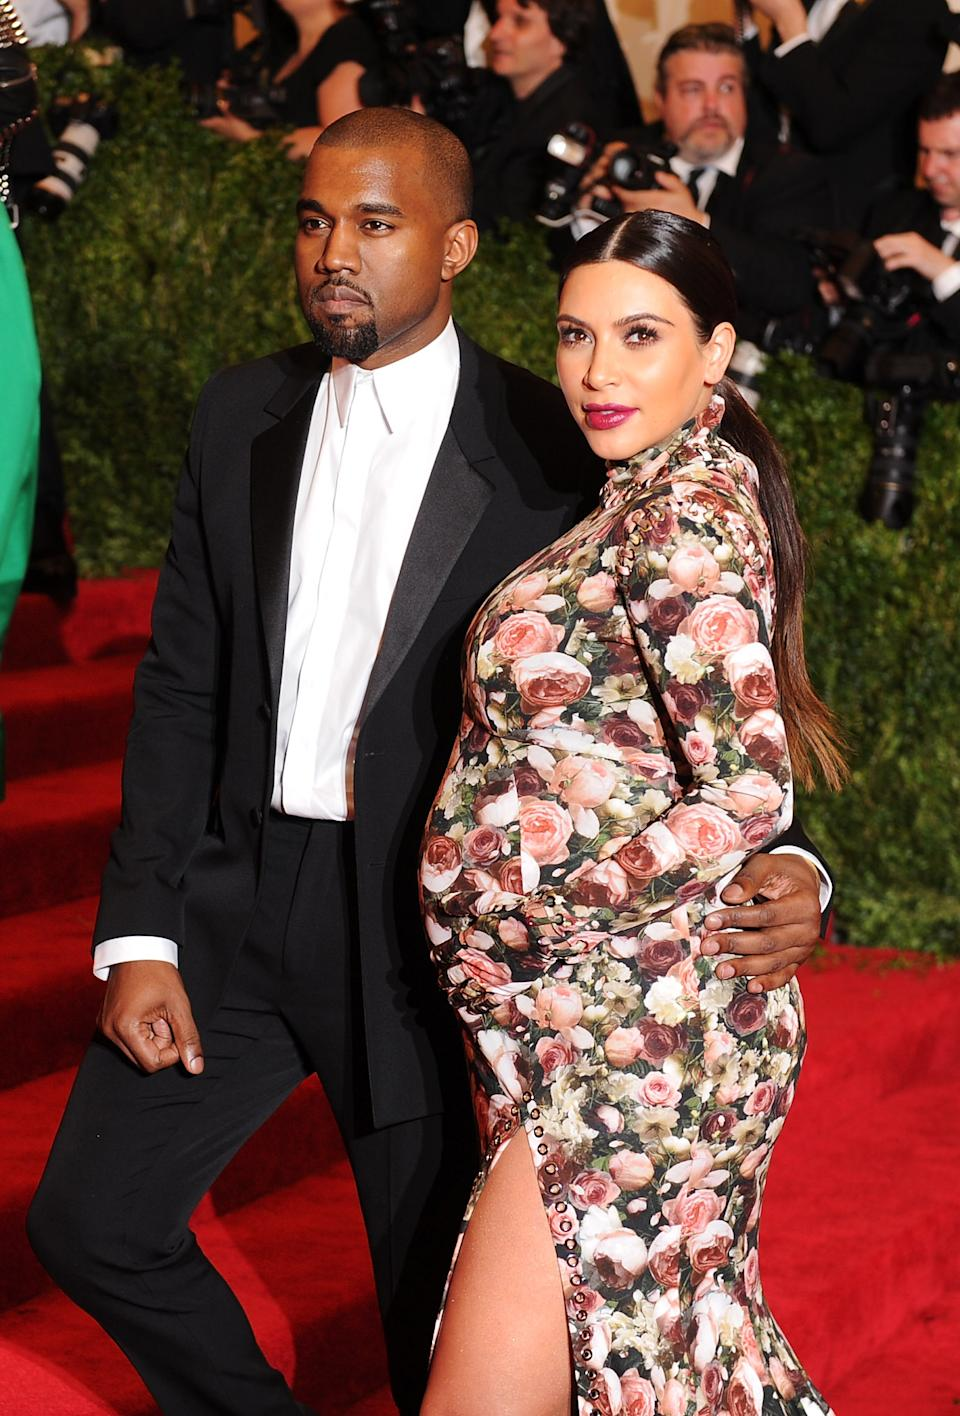 Kanye West and Kim Kardashian attend the Costume Institute Gala for the